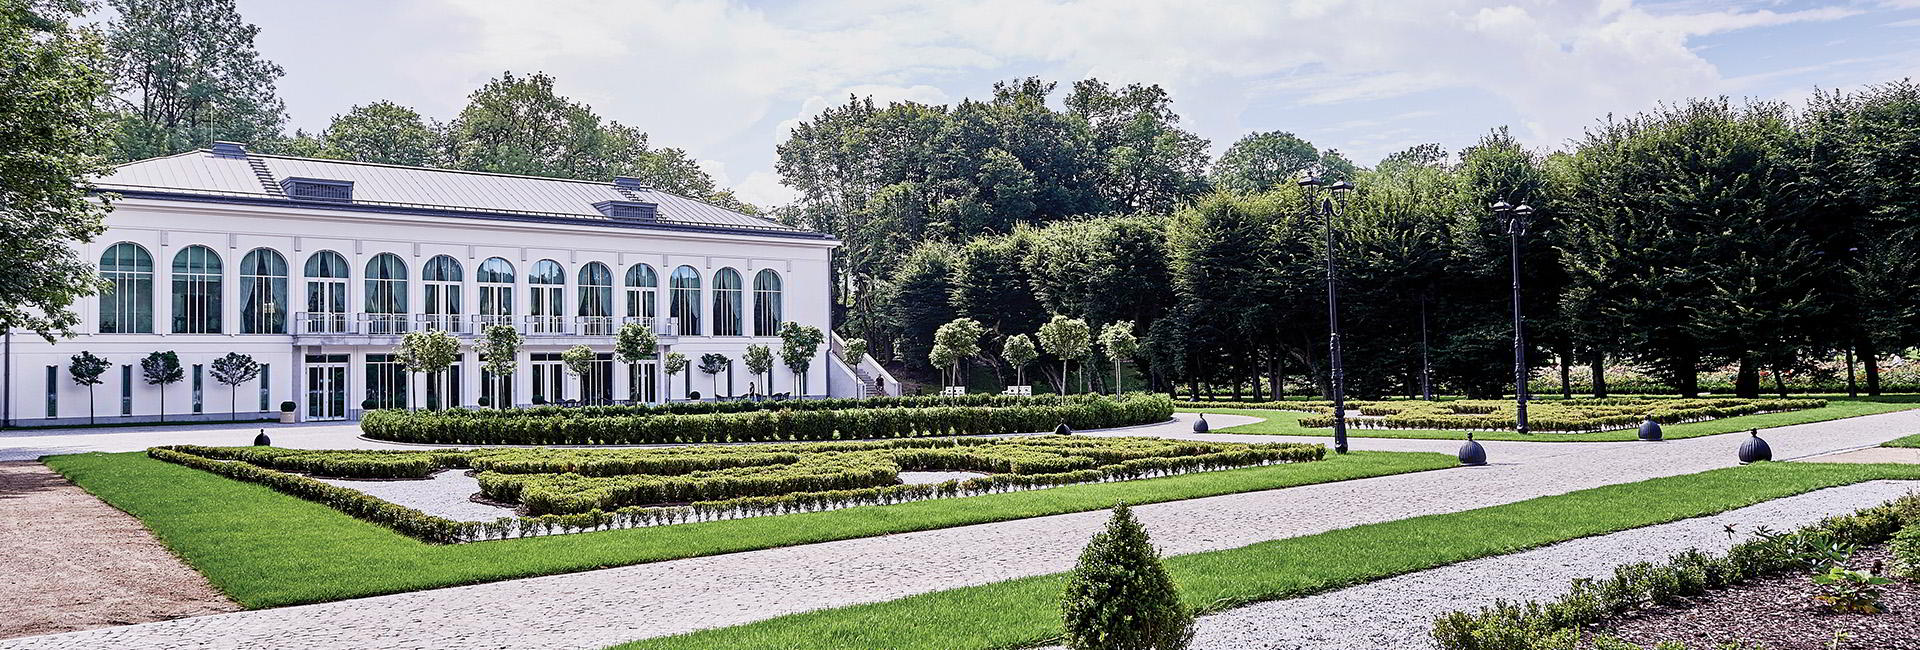 Orangerie at Hotel Mala Wies Palace